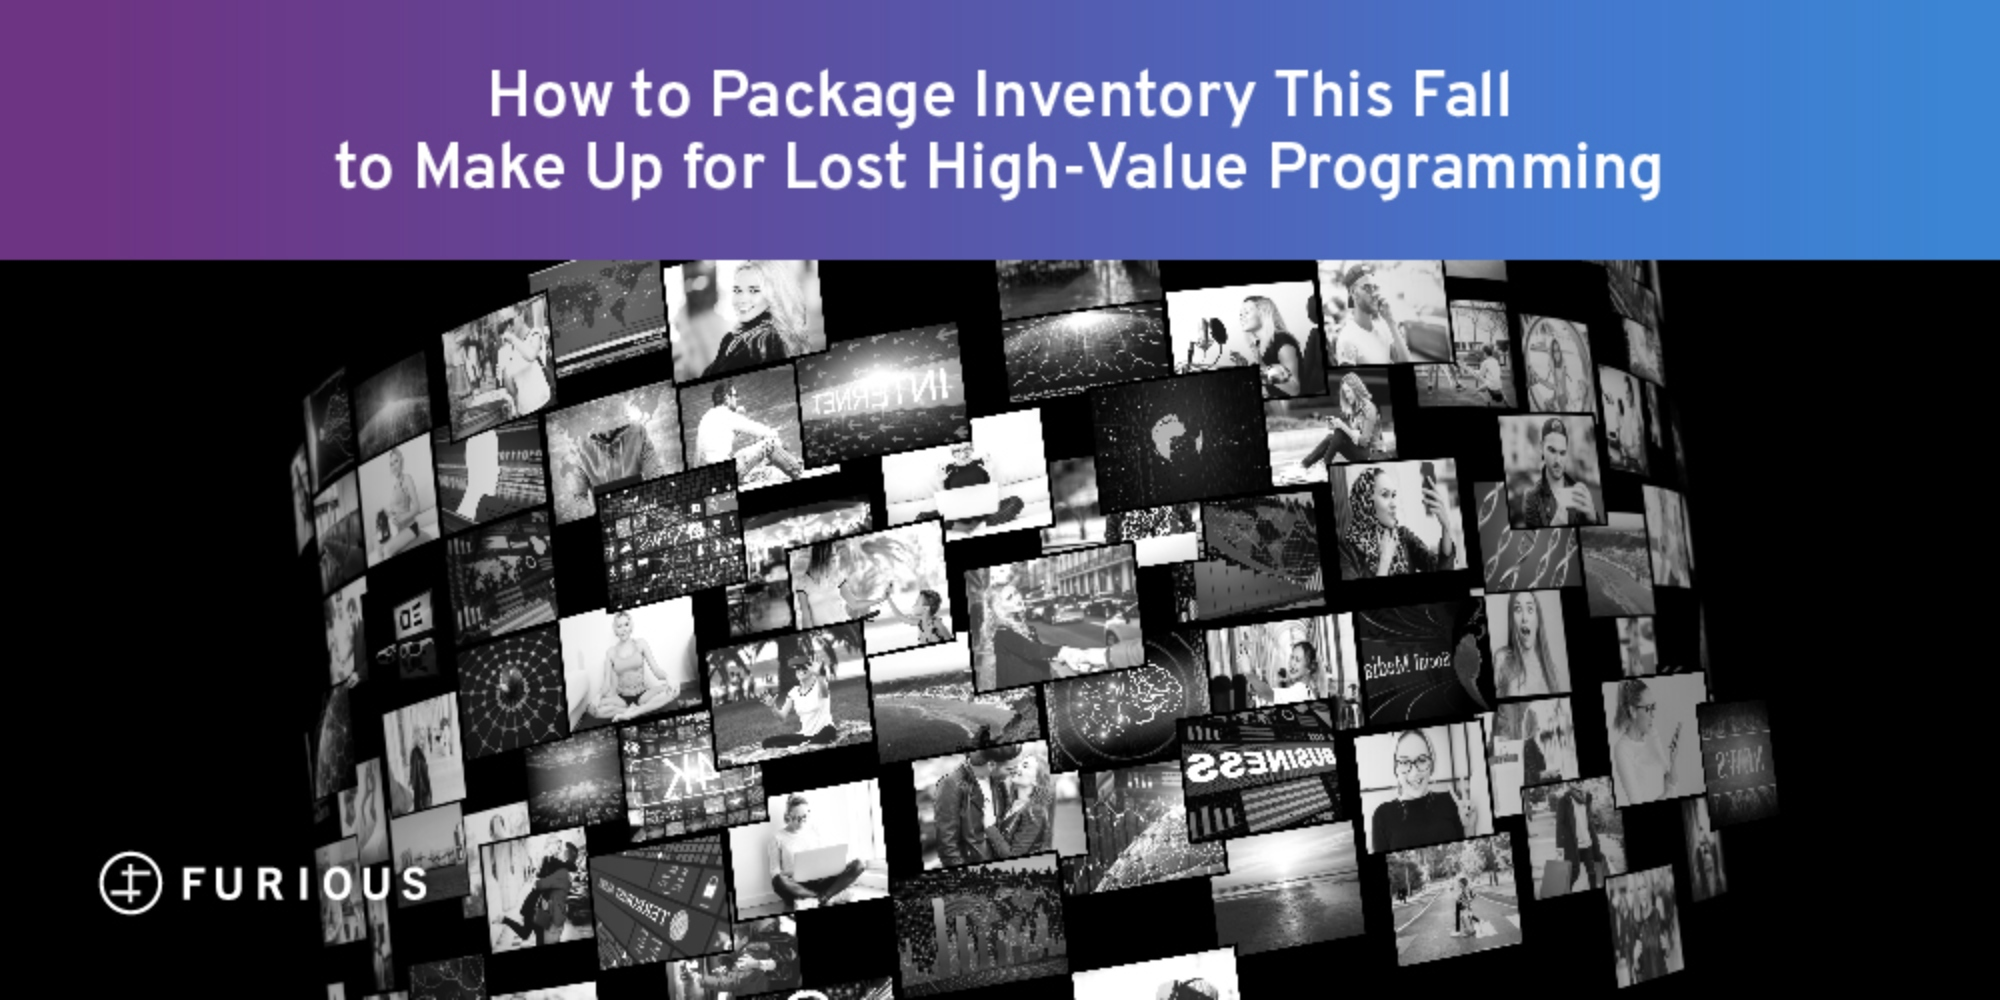 How to Package Inventory This Fall to Make Up for Lost High-Value Programming